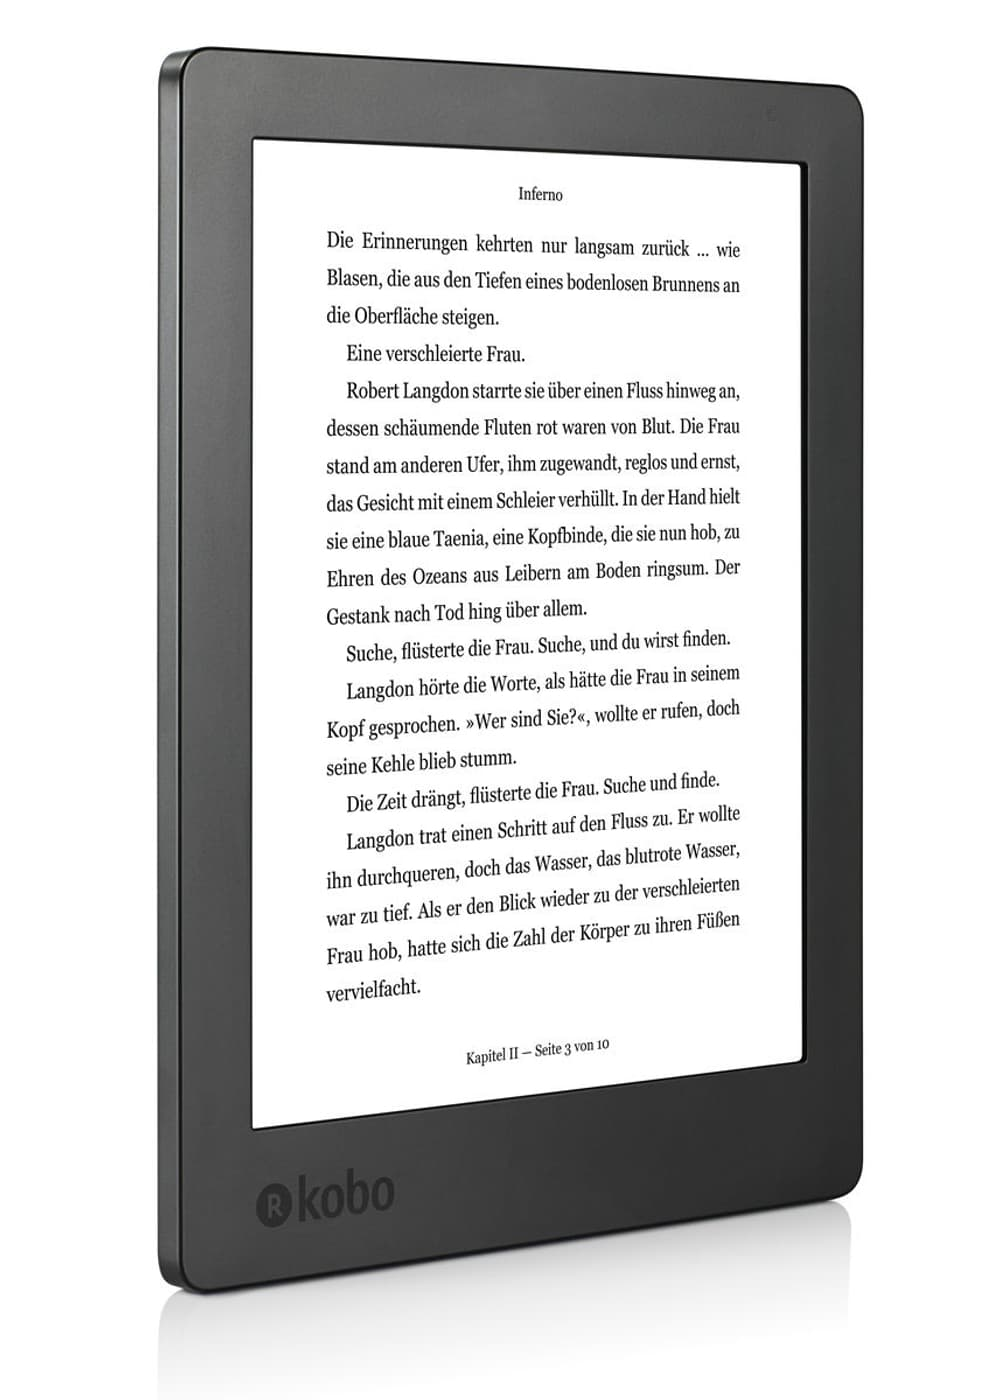 kobo aura h20 instructions